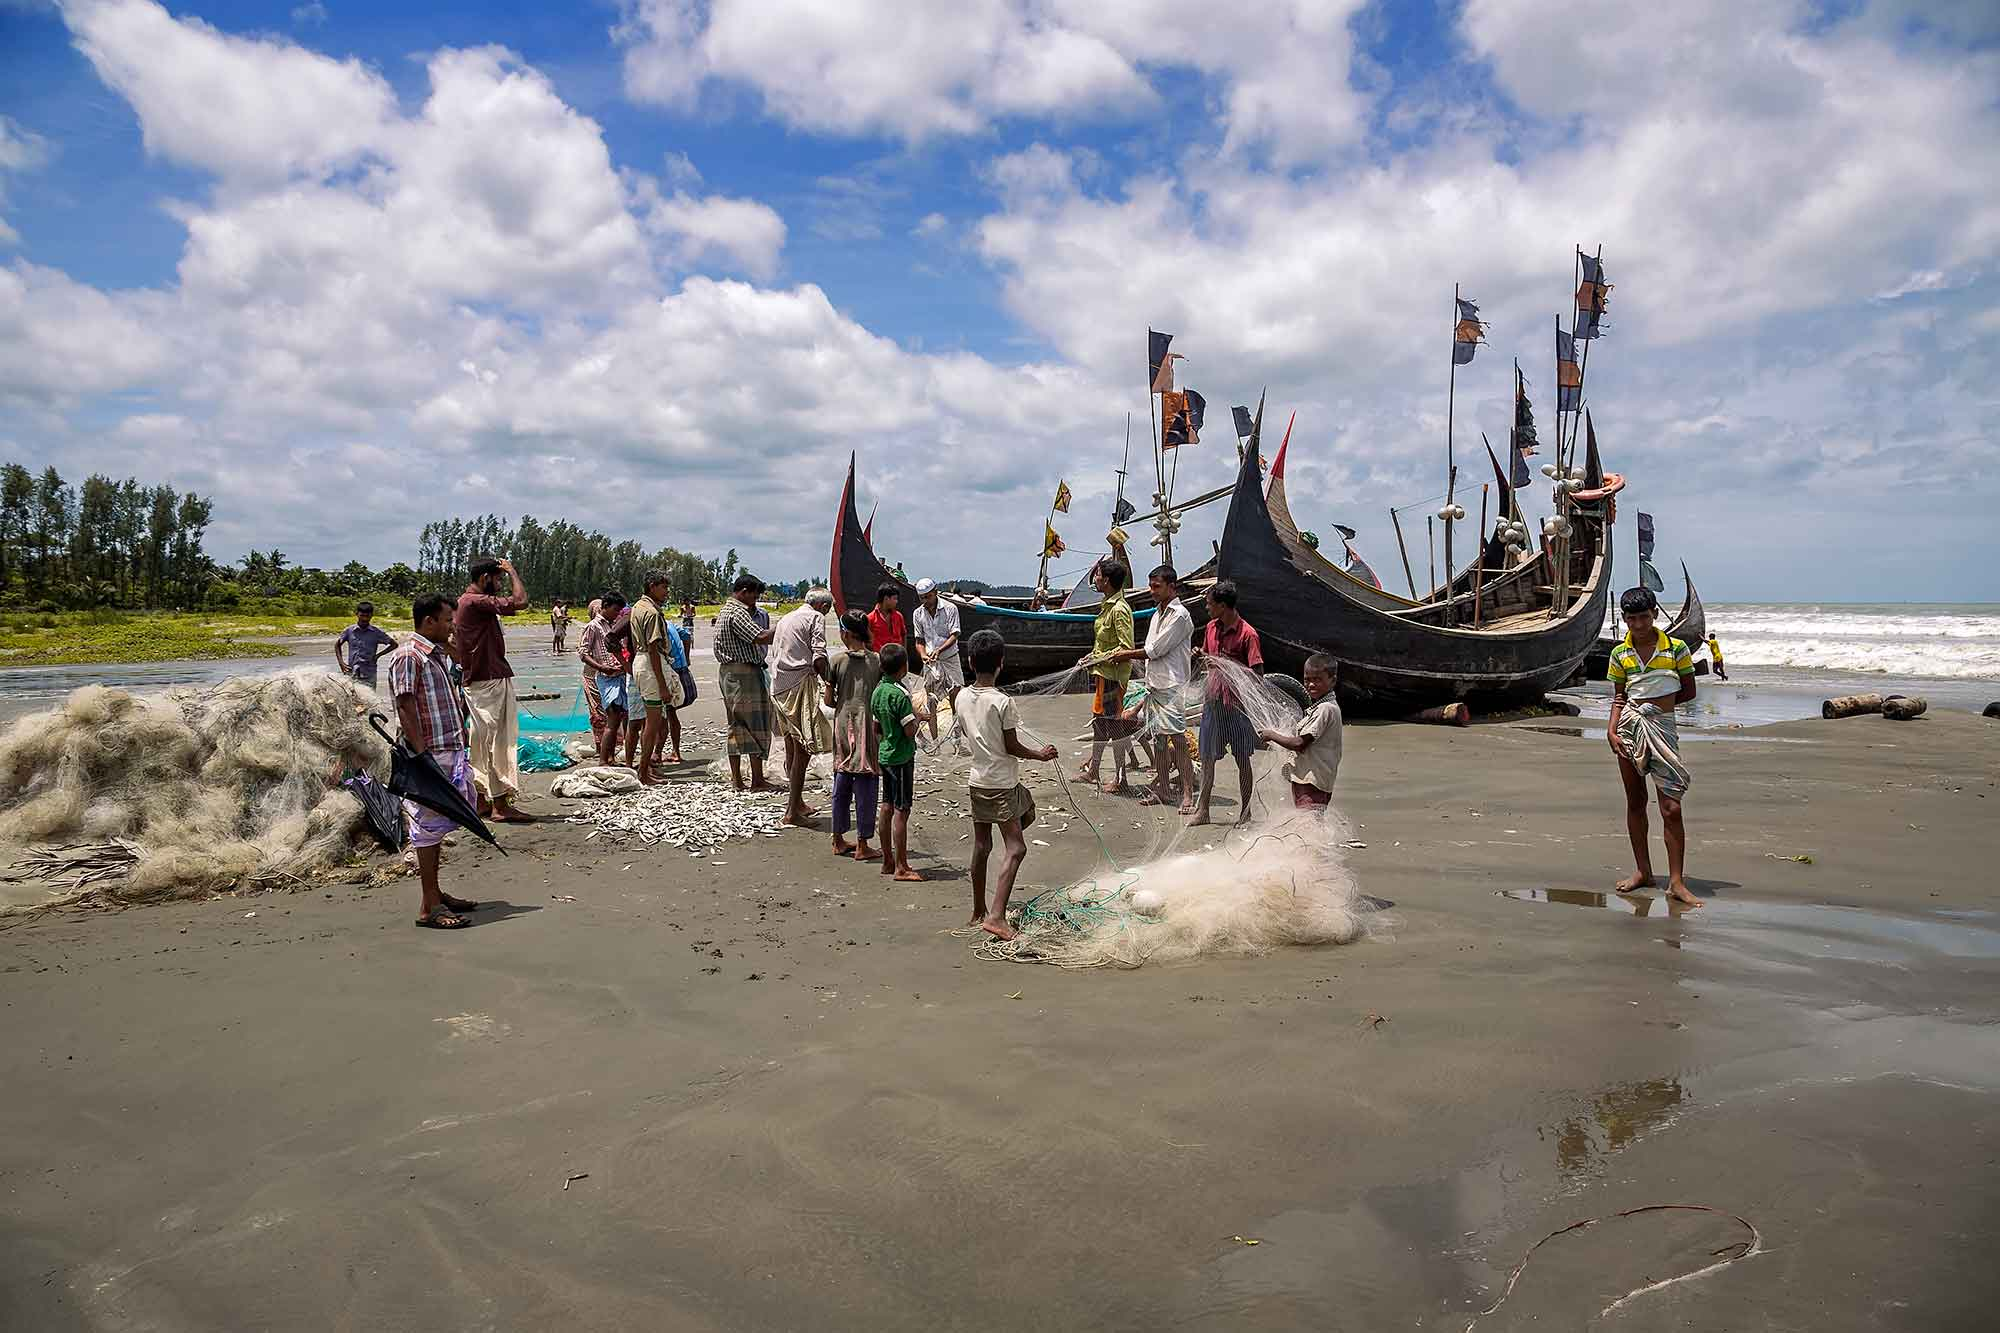 Fishermen getting ready for a day out at sea near Cox's Bazaar, Bangladesh. © Ulli Maier & Nisa Maier